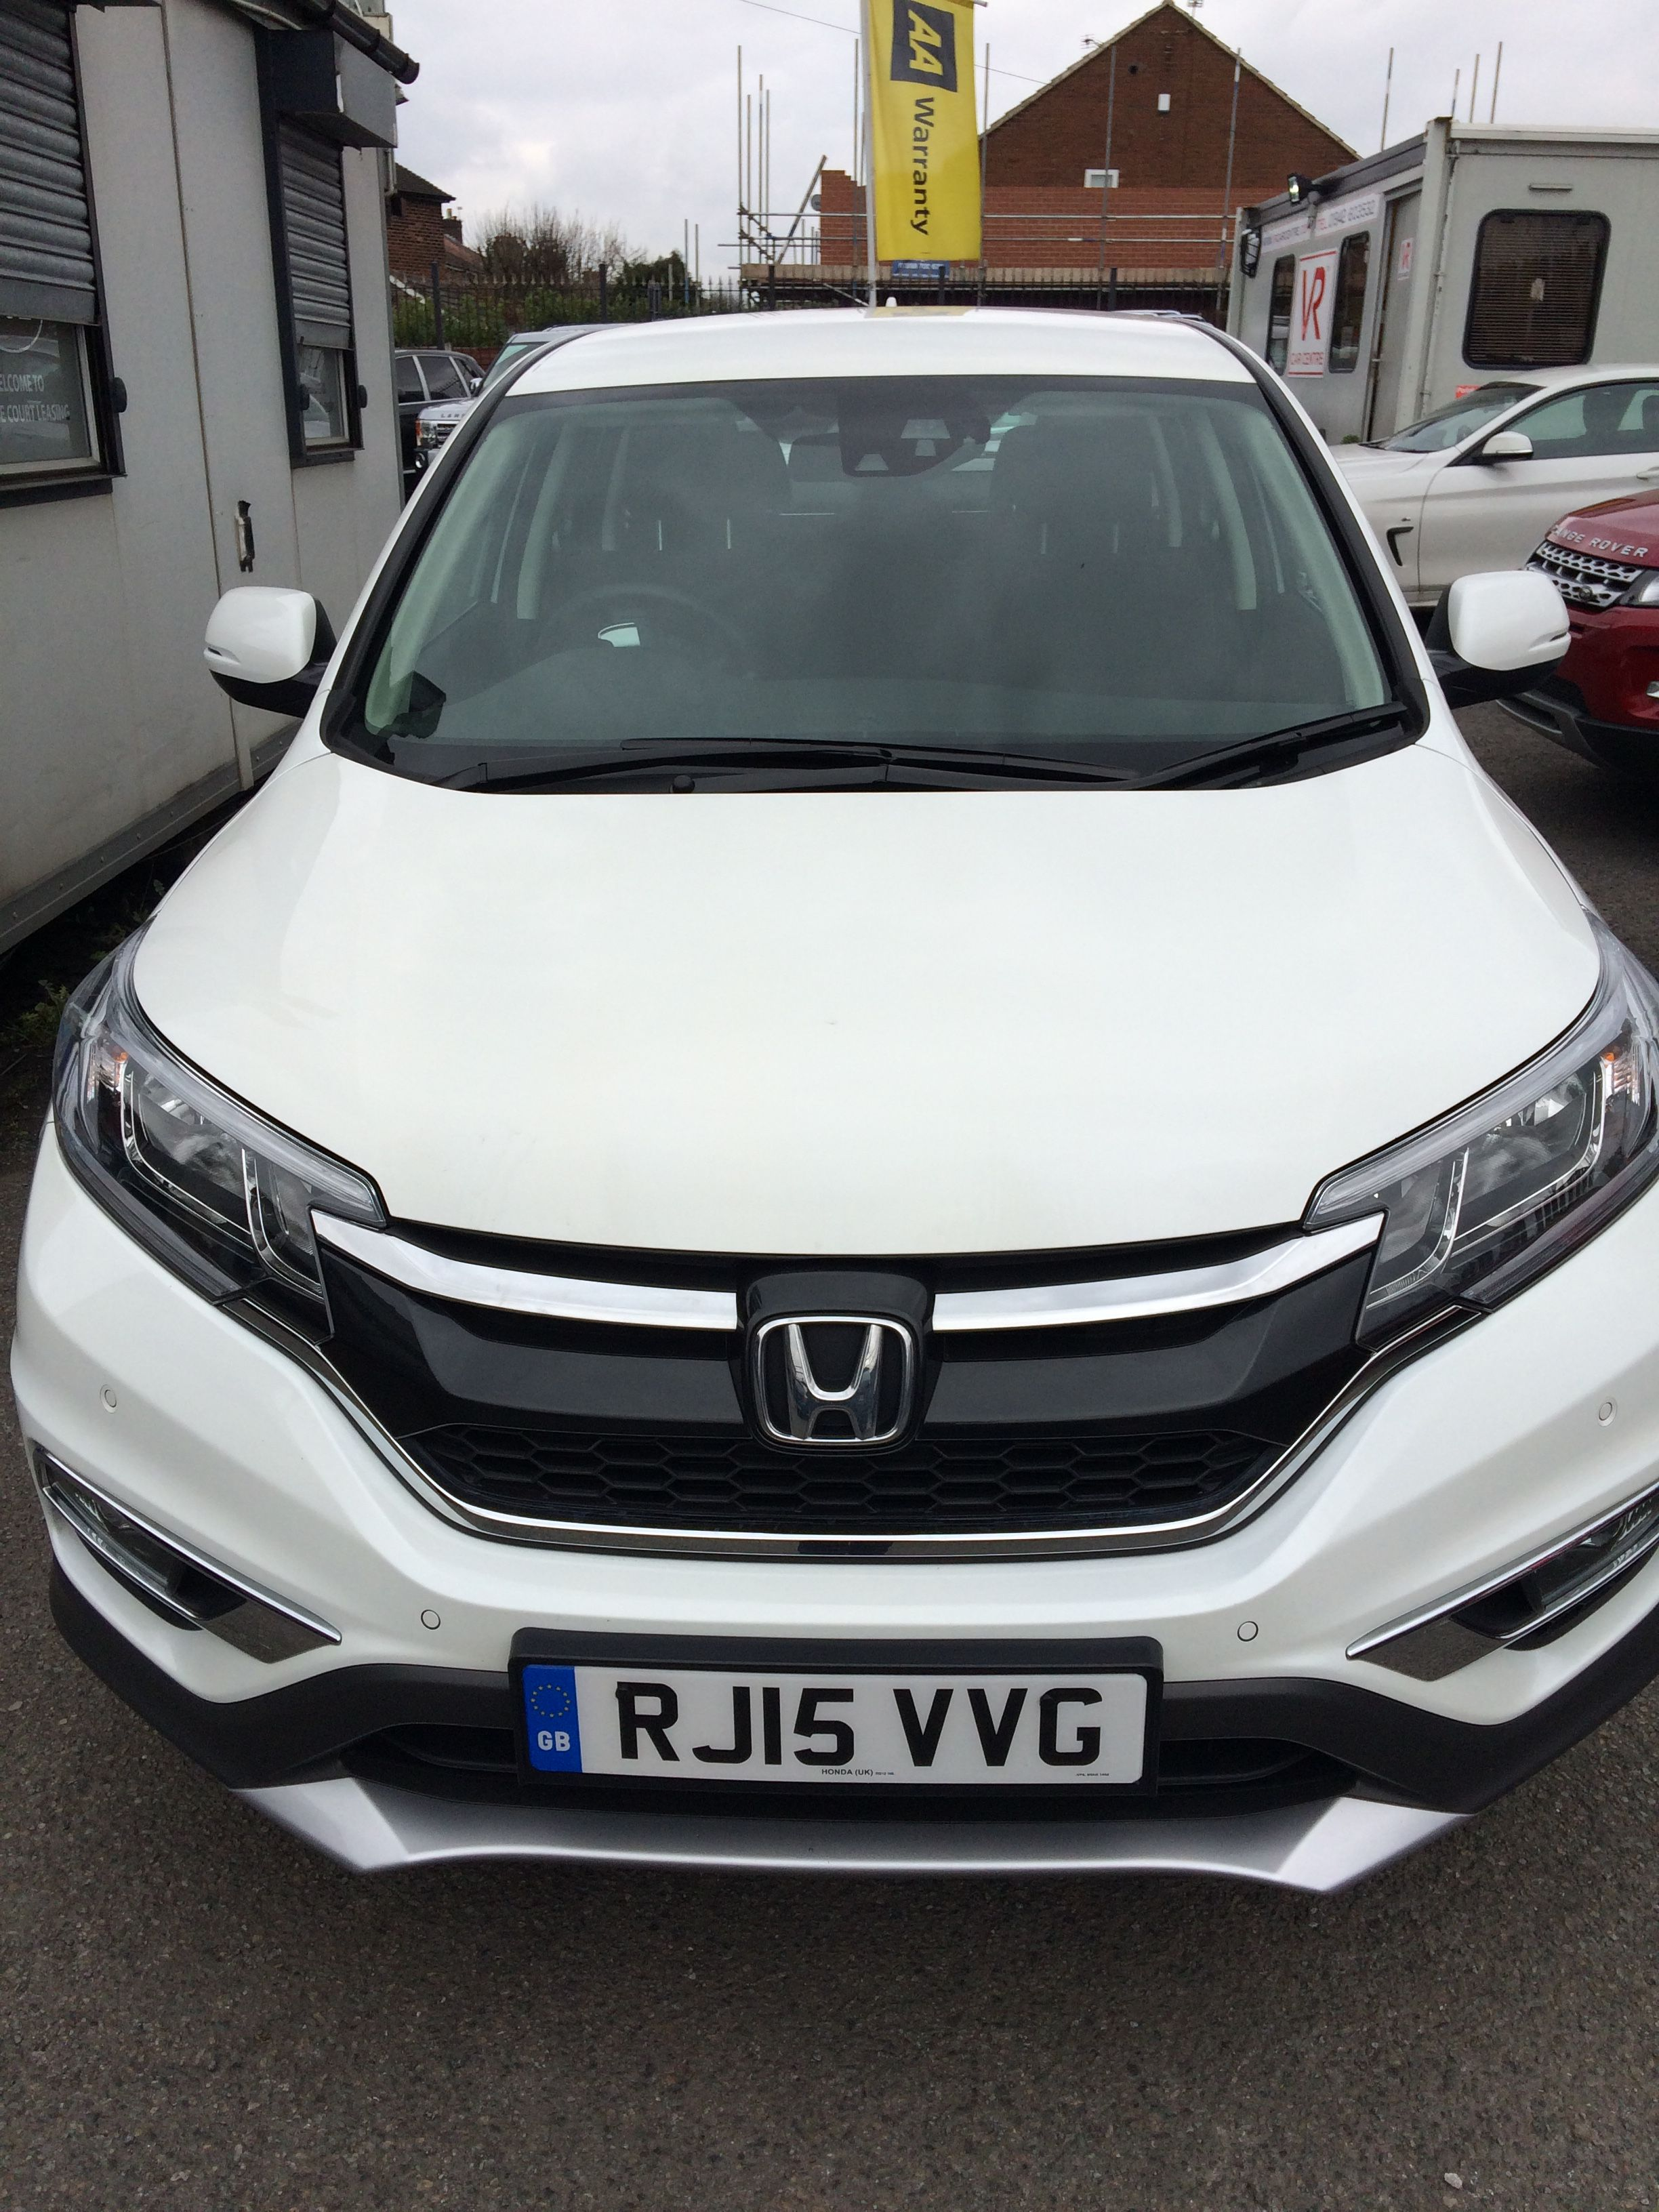 The Honda Crv Carleasing Deal One Of The Many Cars And Vans Available To Lease From Www Carlease Uk Com Car Lease Honda Crv Honda